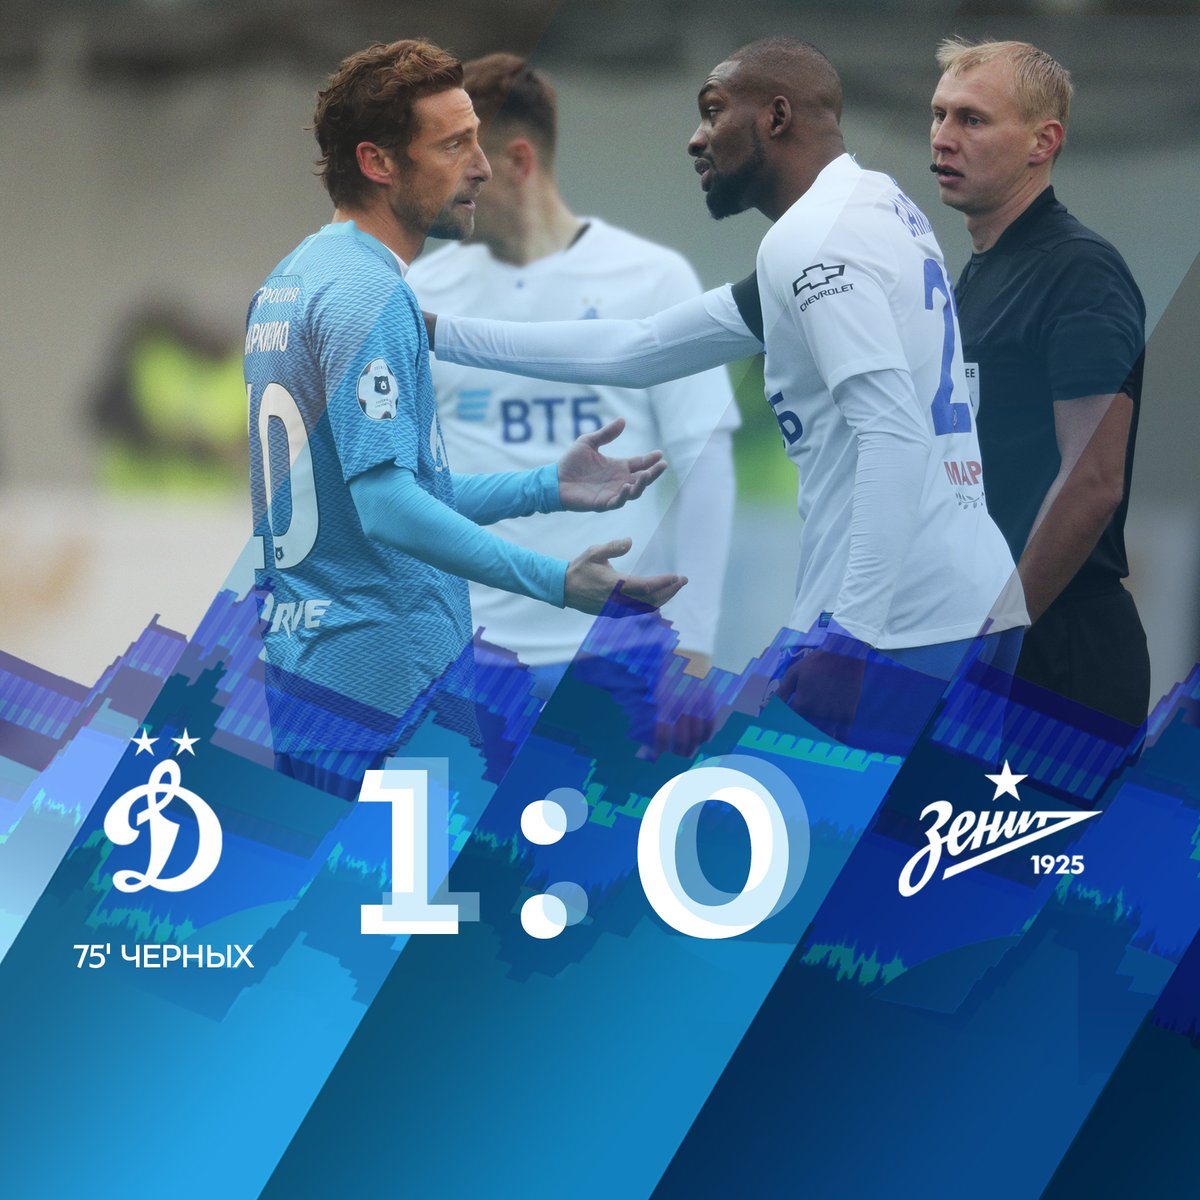 Dynamo Moscow 1:0 Zenit- Match Report